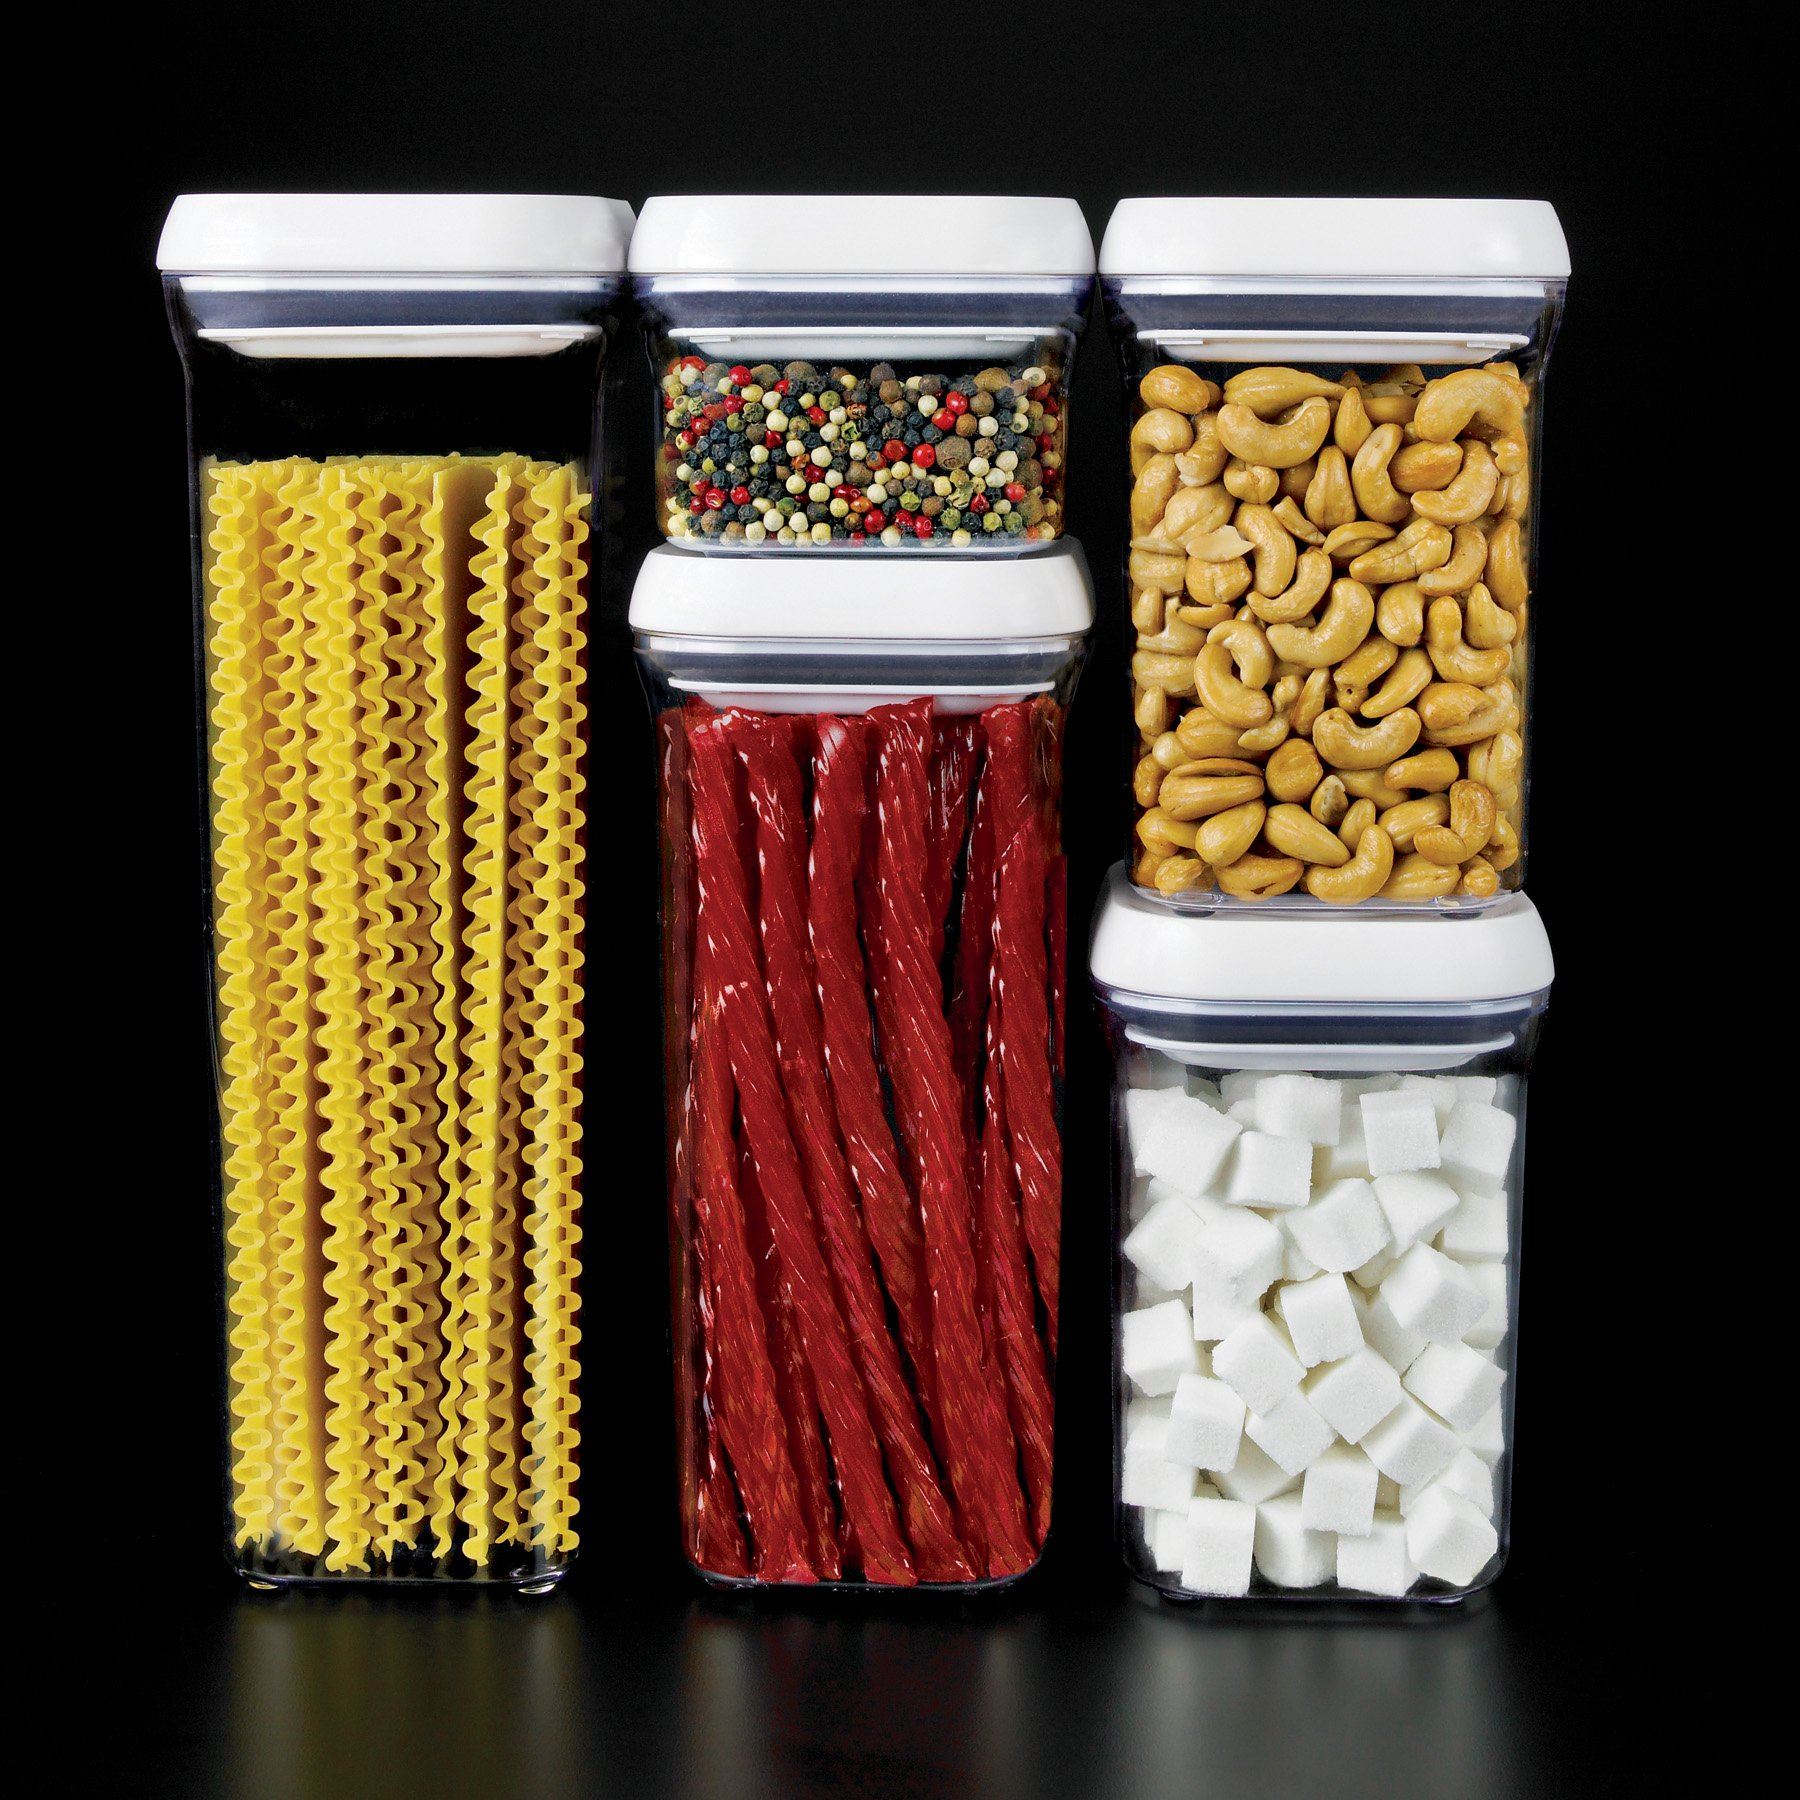 OXO Good Grips 5-Piece Airtight POP Container Set by OXO (Image #2)